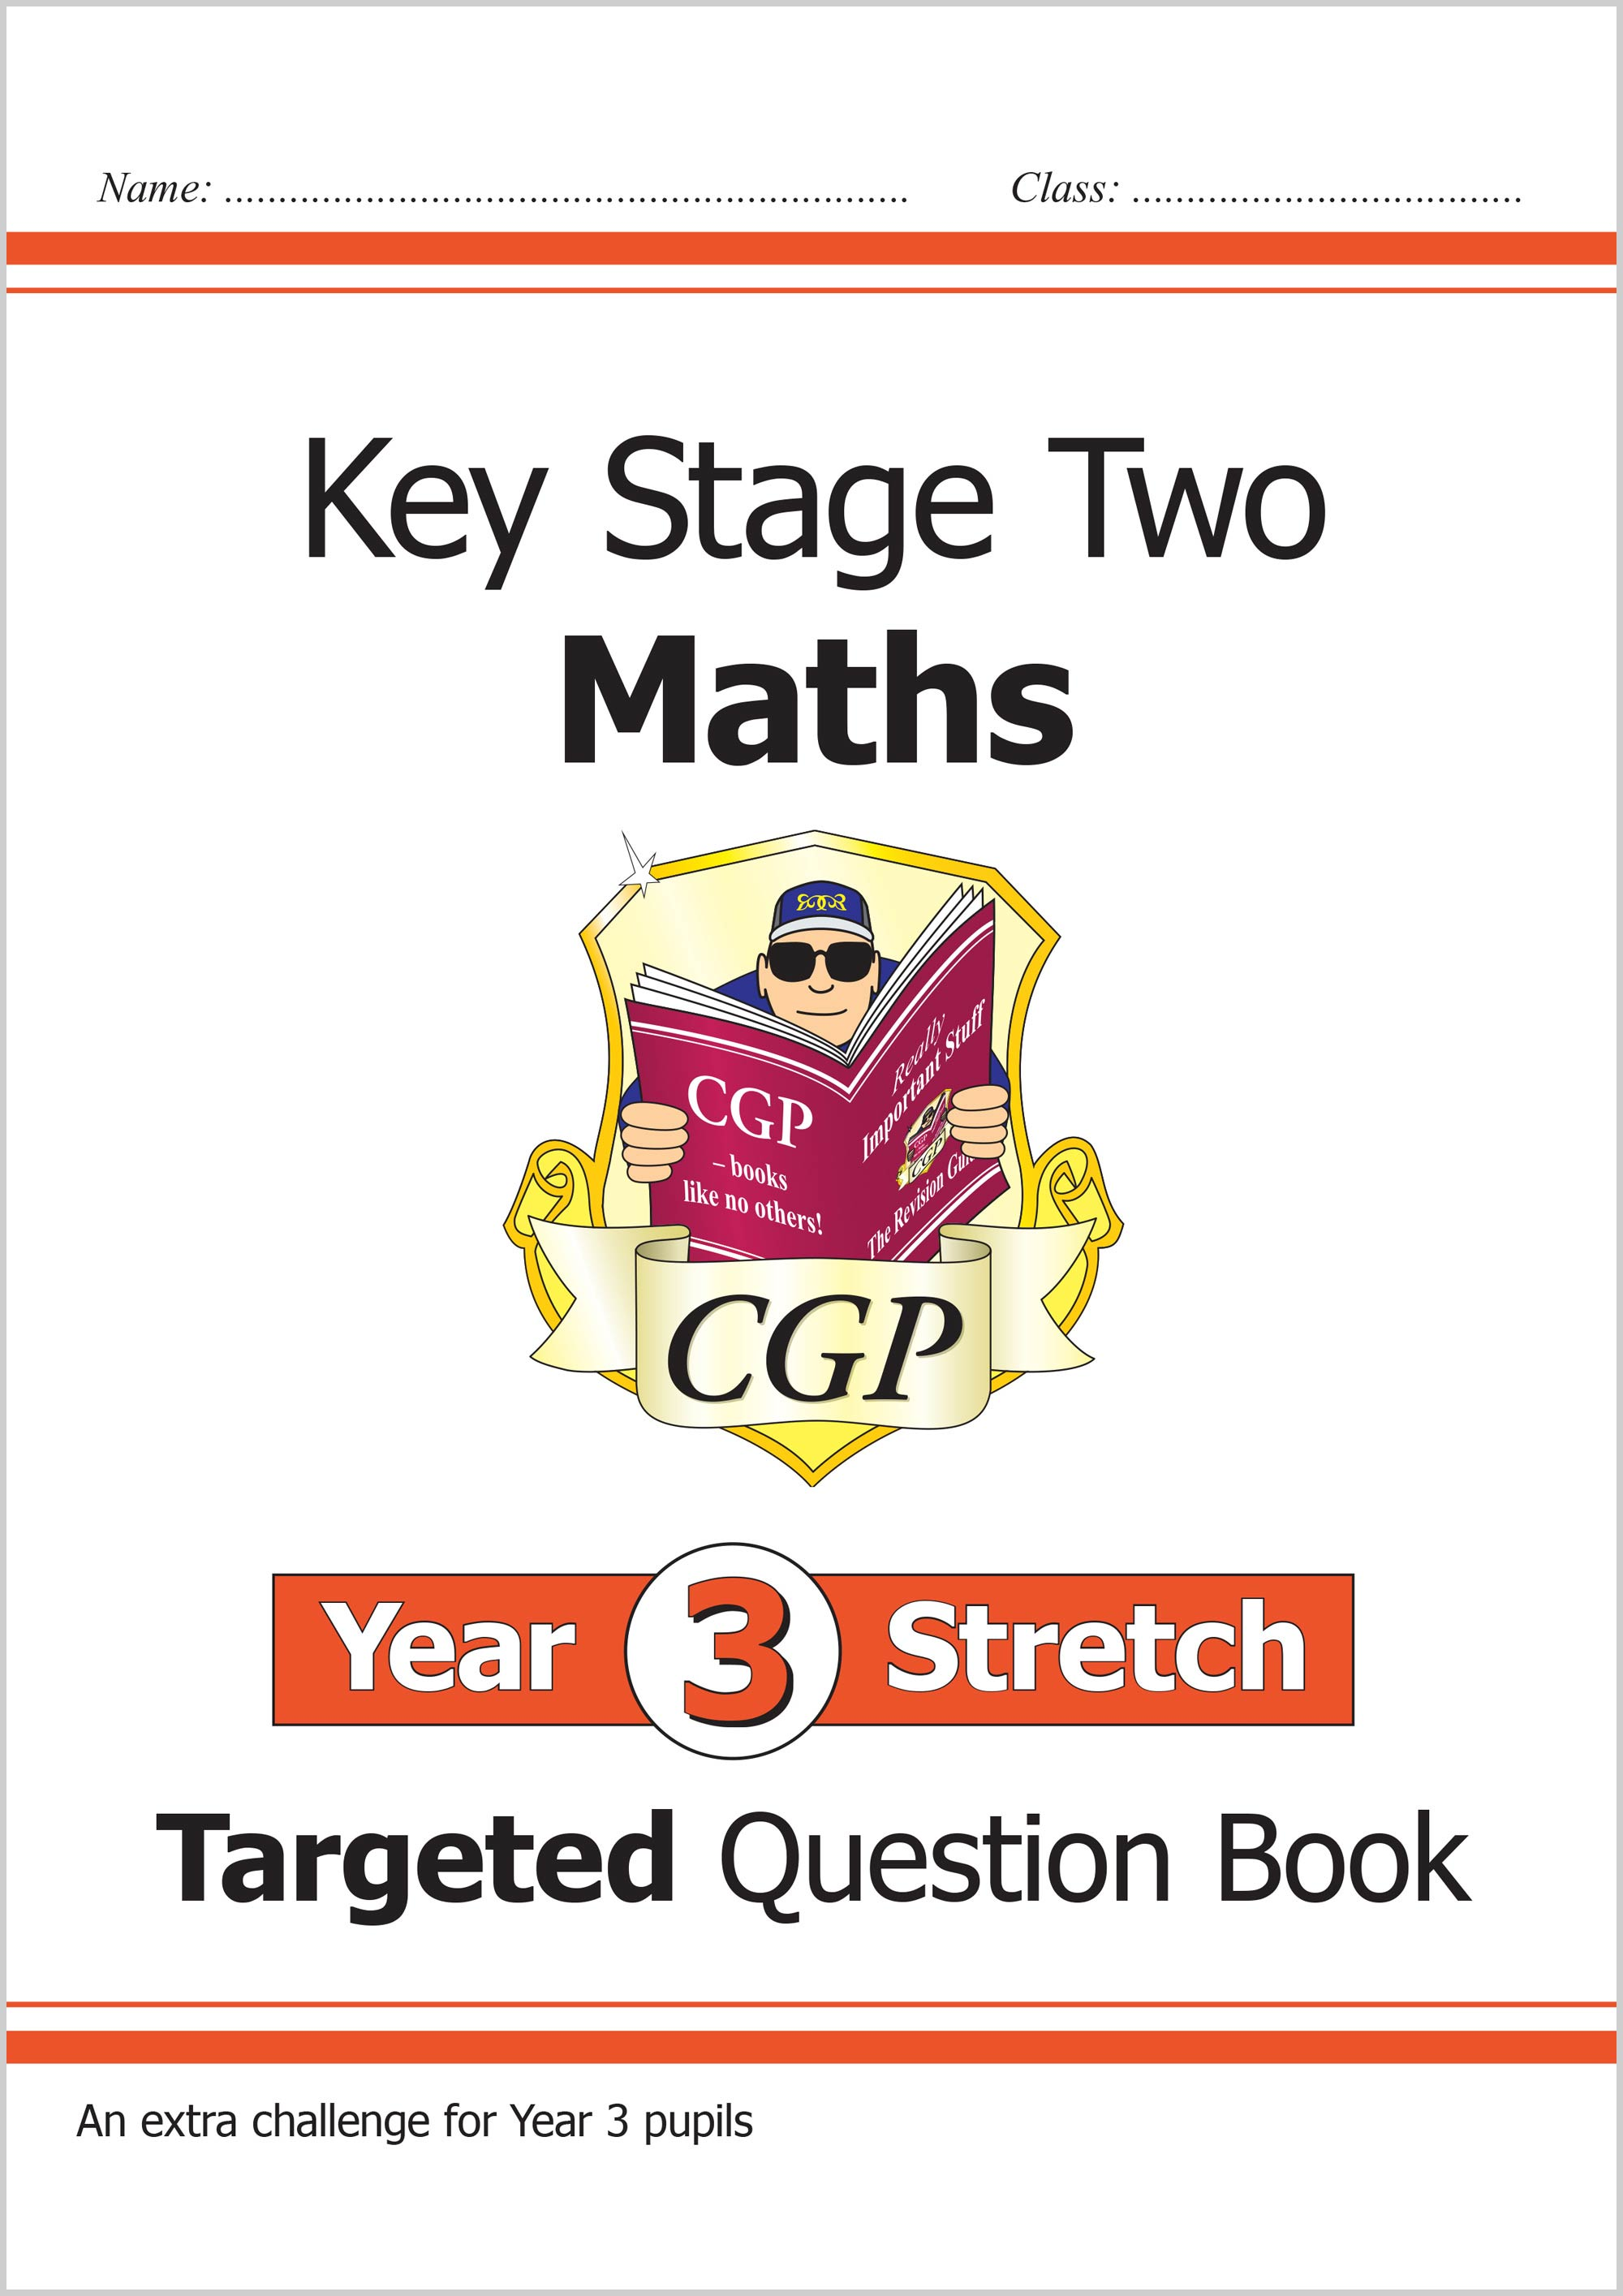 M3HQ21 - tbc KS2 Maths Targeted Question Book - Year 3 Stretch, Challenging Maths for Year 3 Pupils